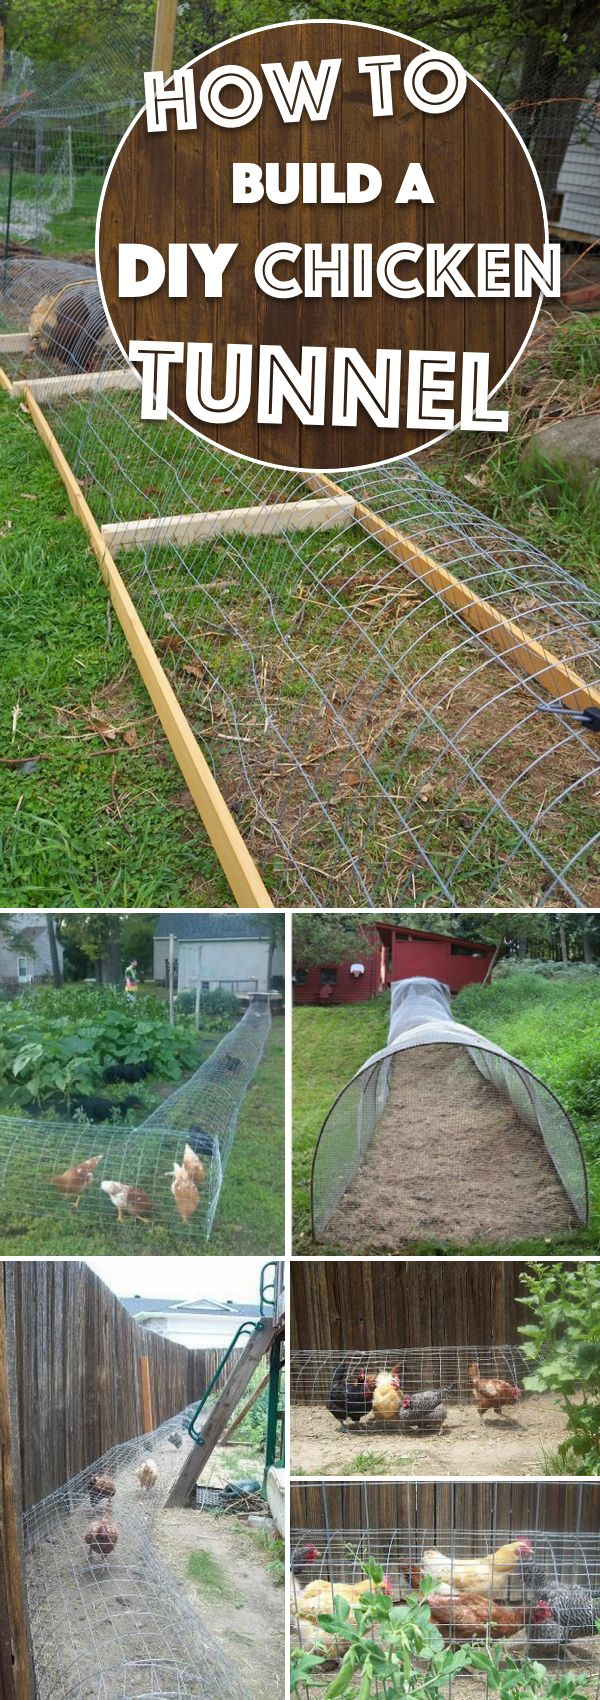 A DIY Chicken Tunnel Can Let You Watch the Birds Roam Freely WIthout Destroying the Garden Flower Beds!